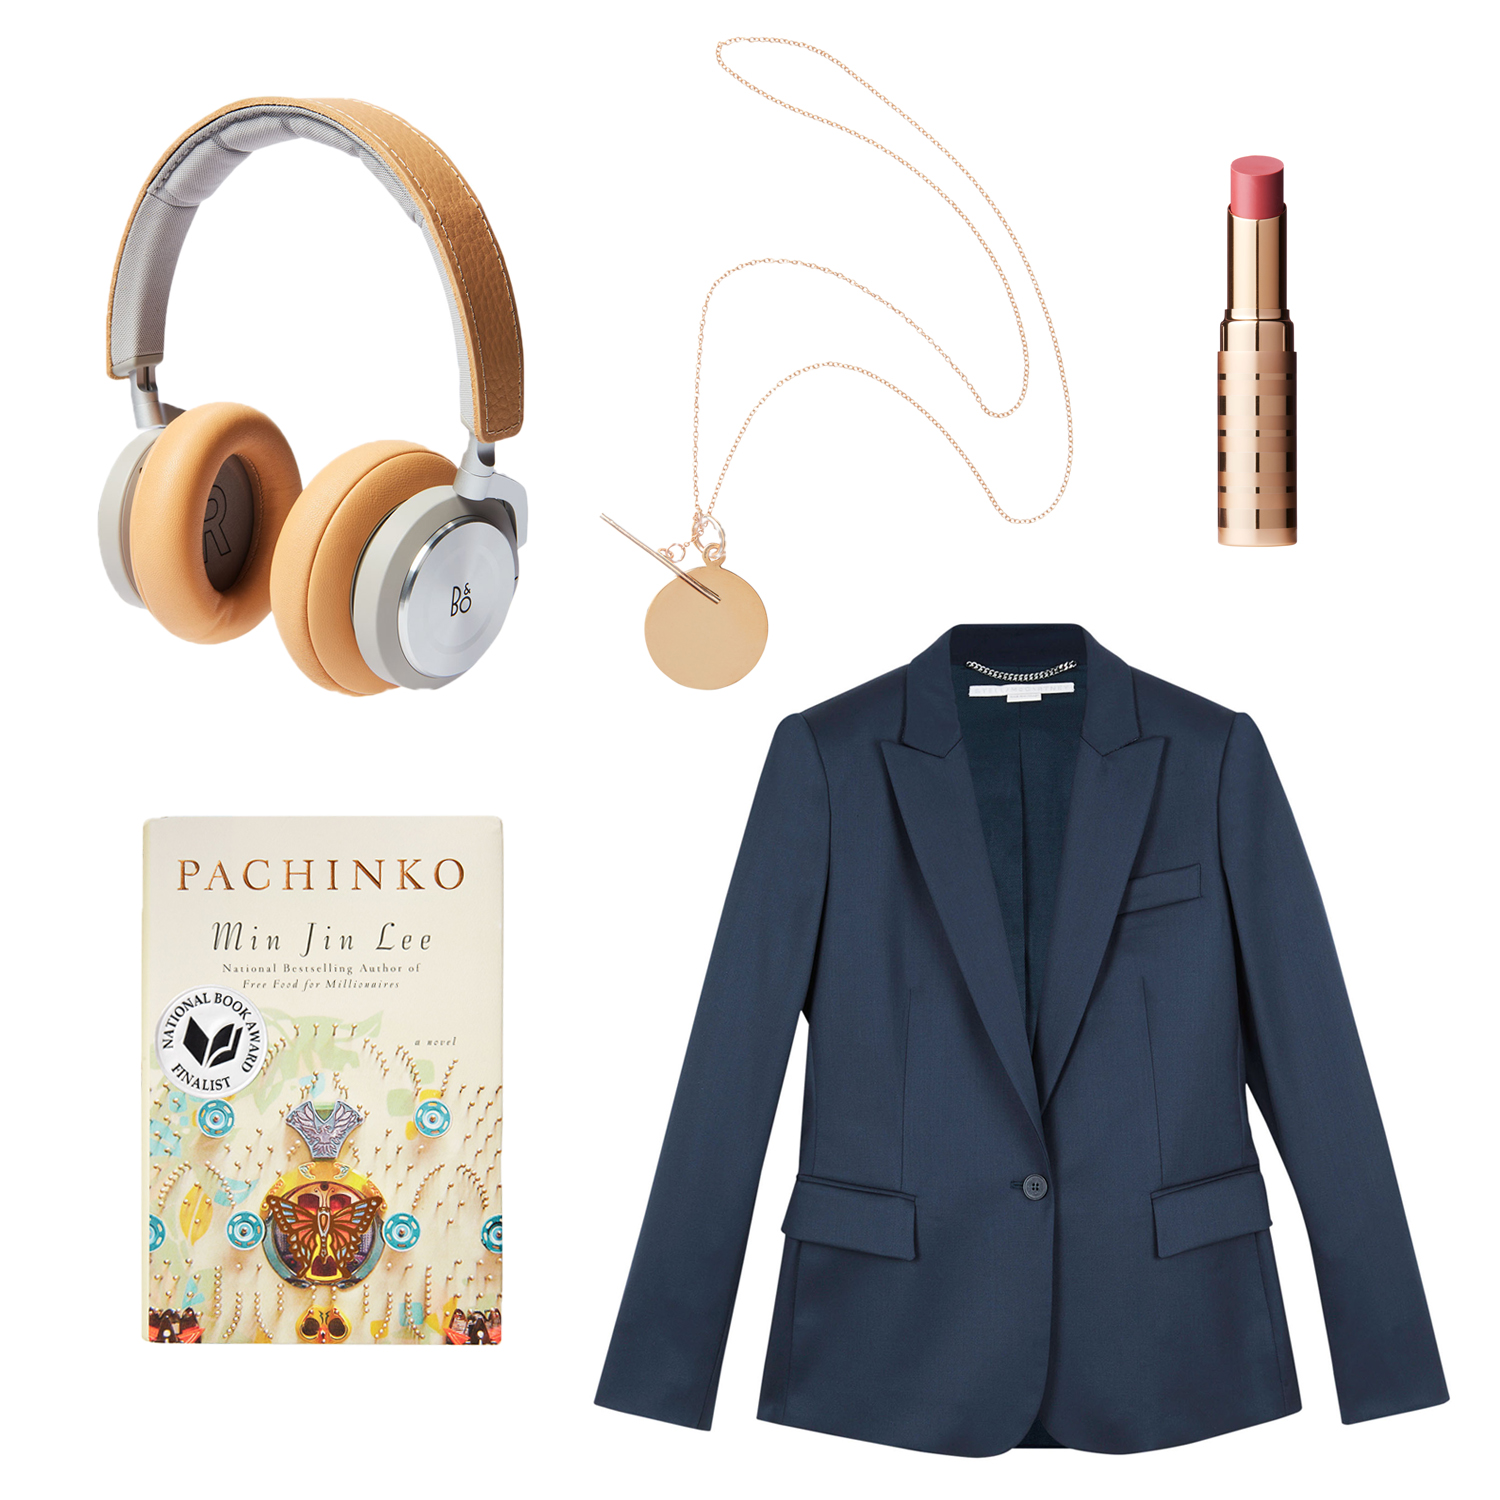 headphones jacket necklace book and lipstick collage